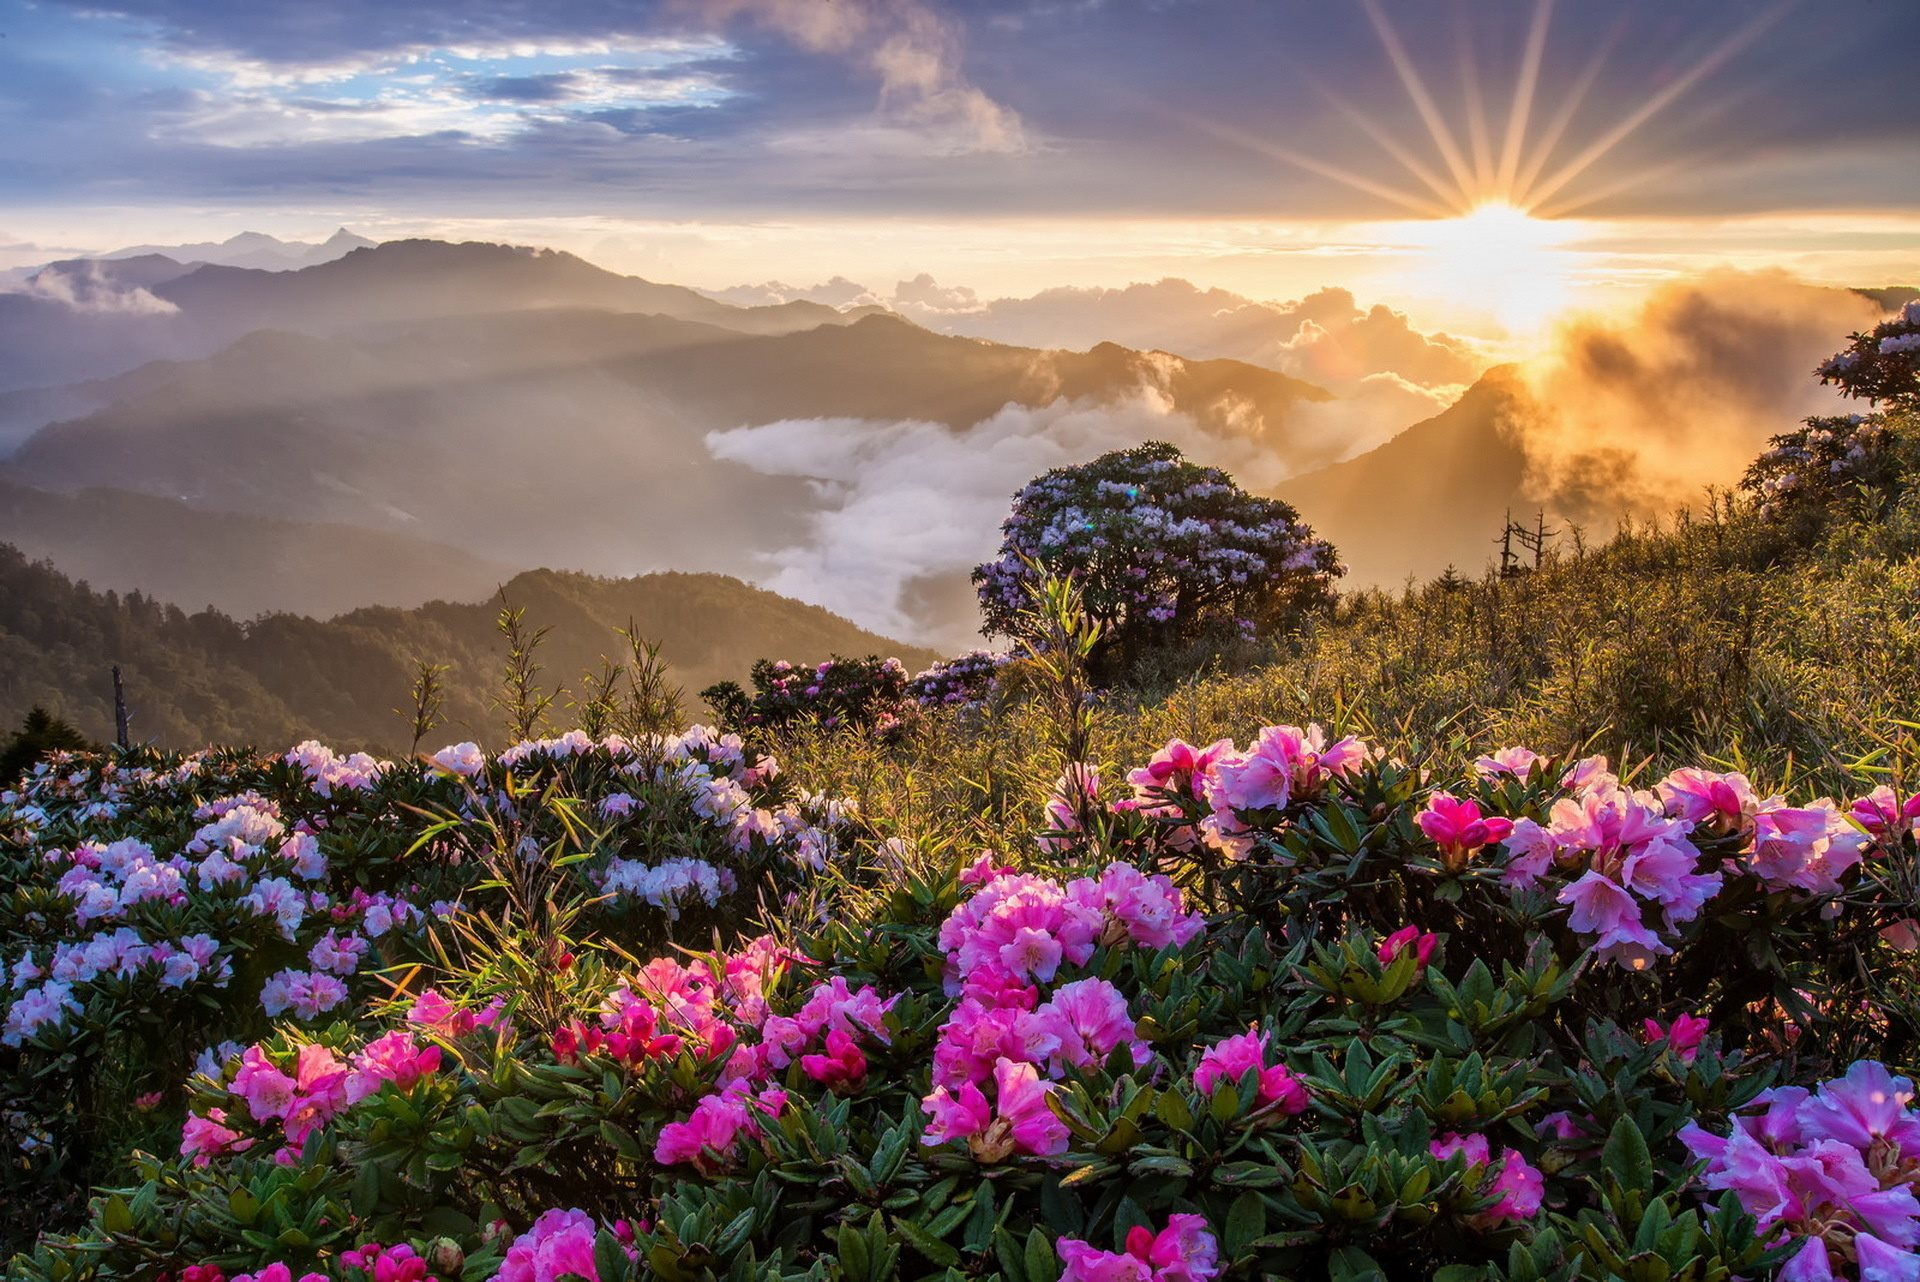 sunrise pictures in the mountains - HD1440×900